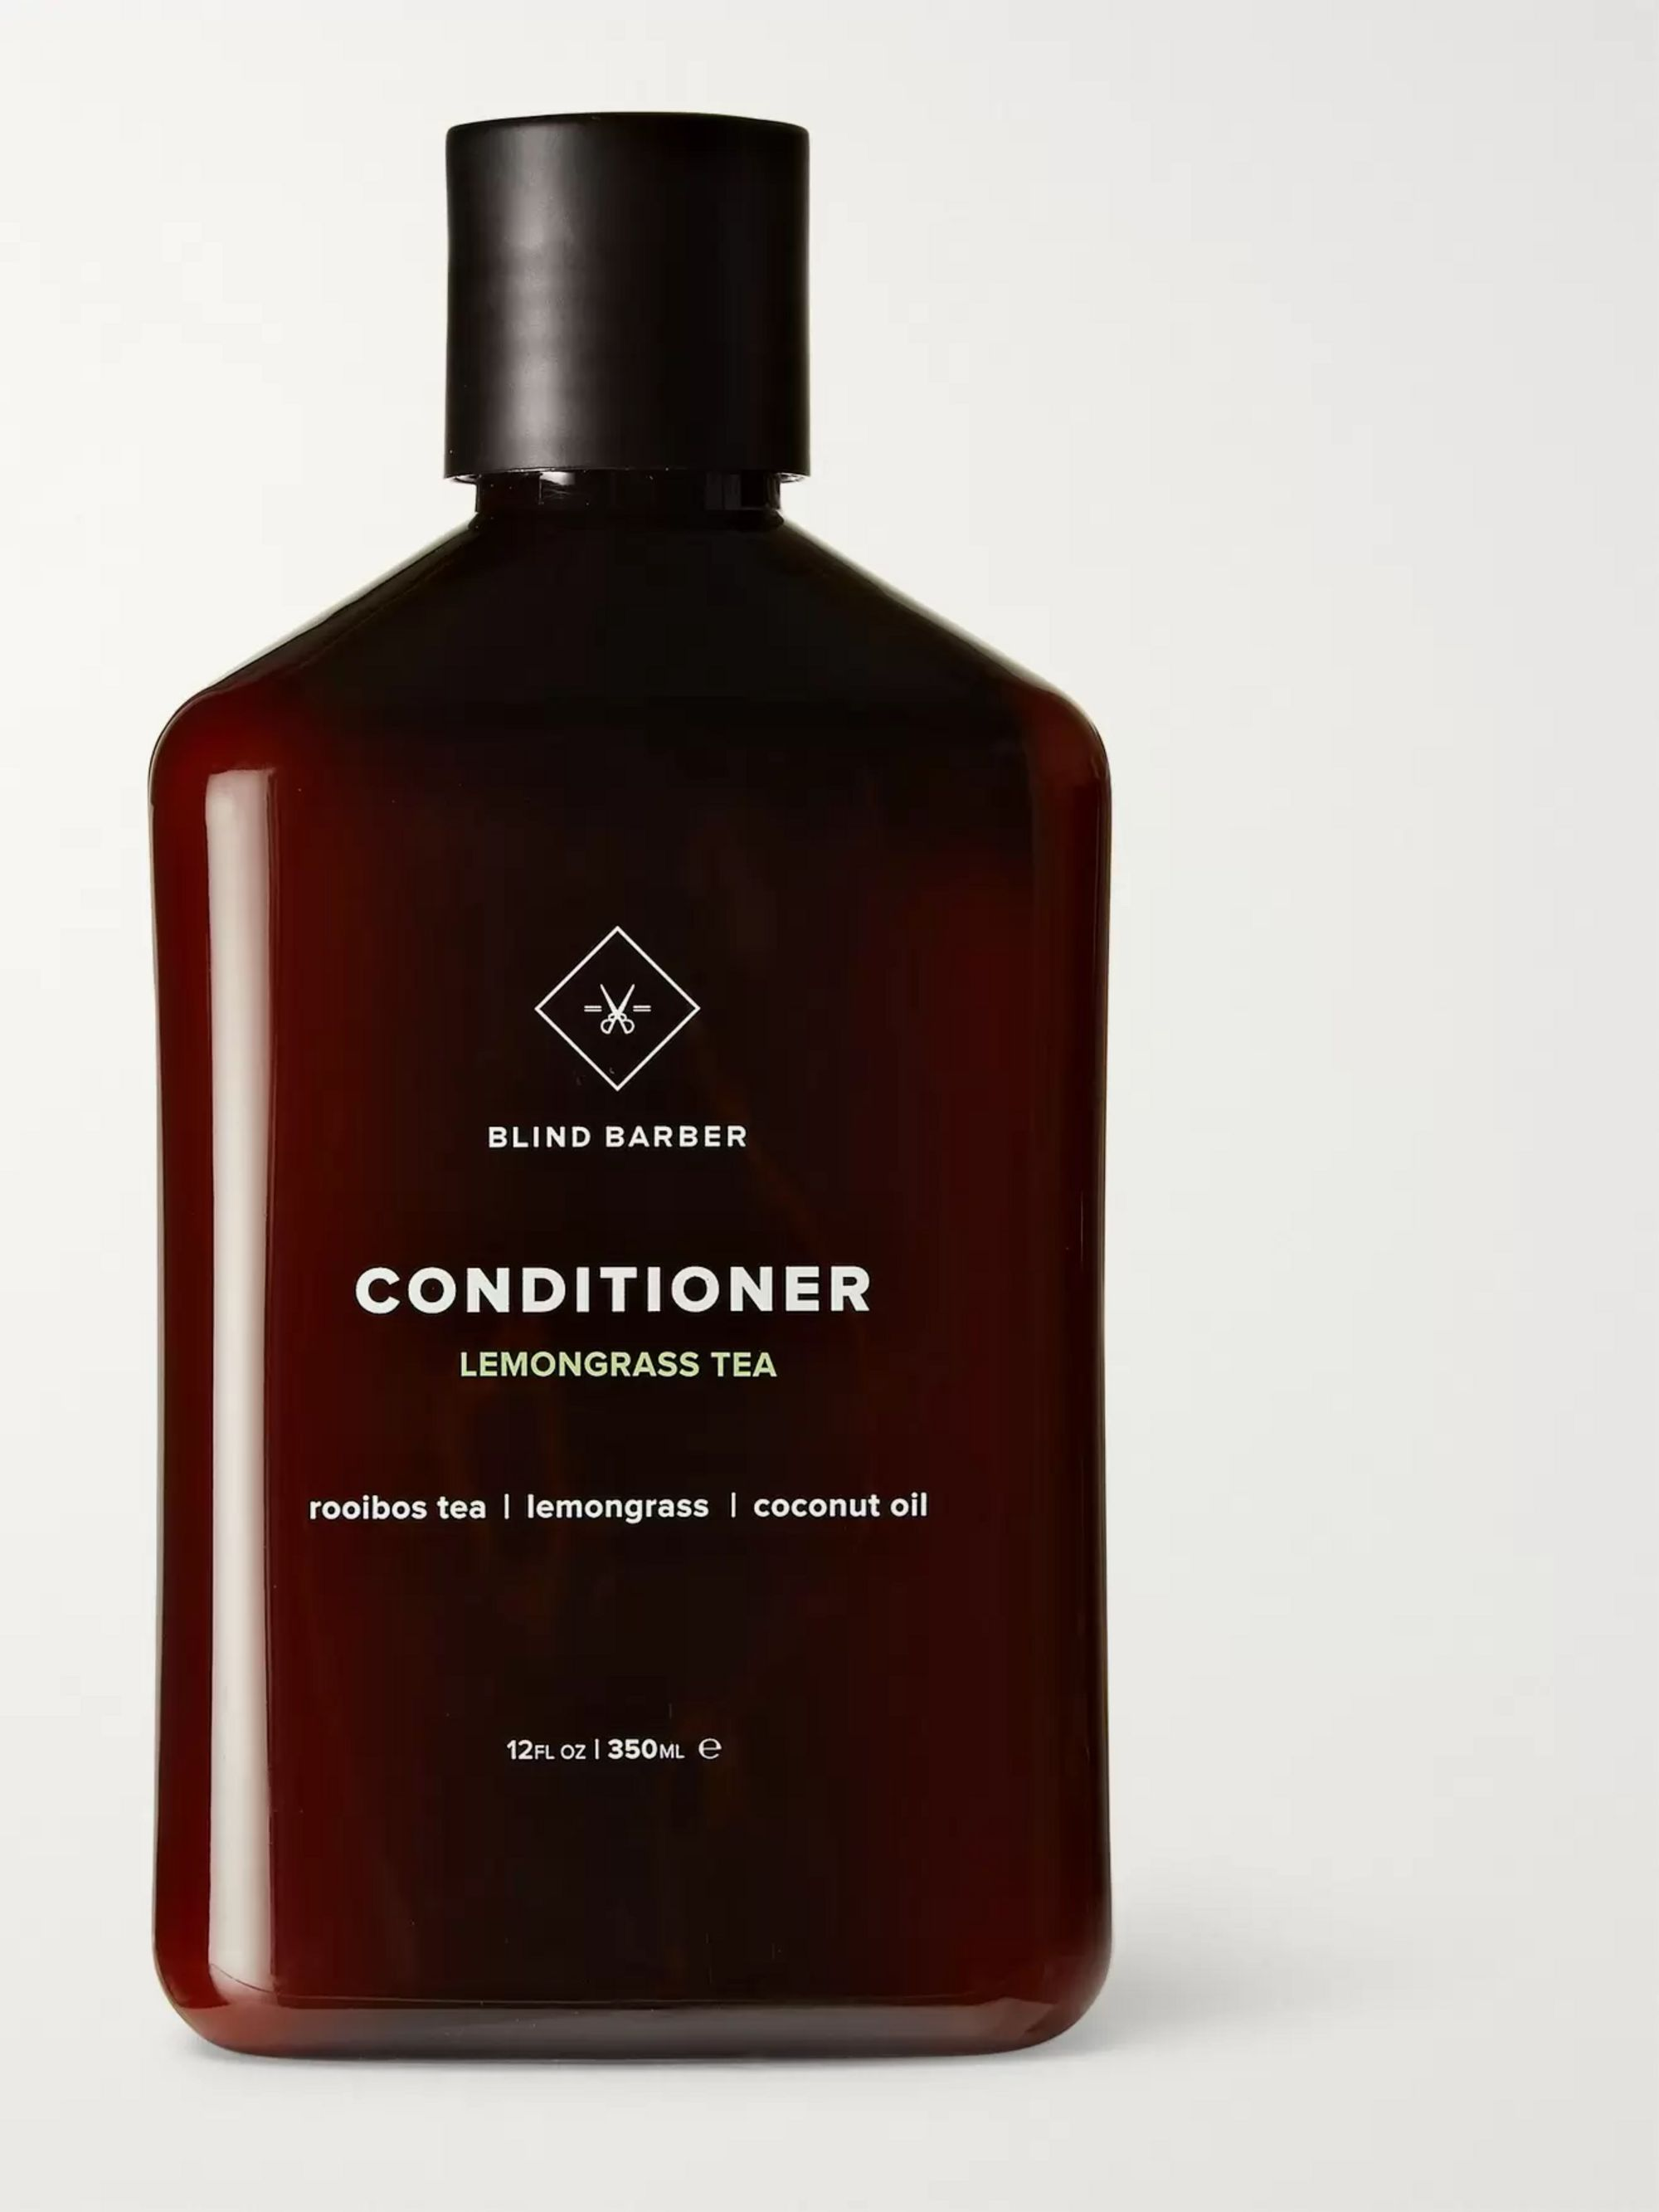 Blind Barber Lemongrass Tea Conditioner, 350ml